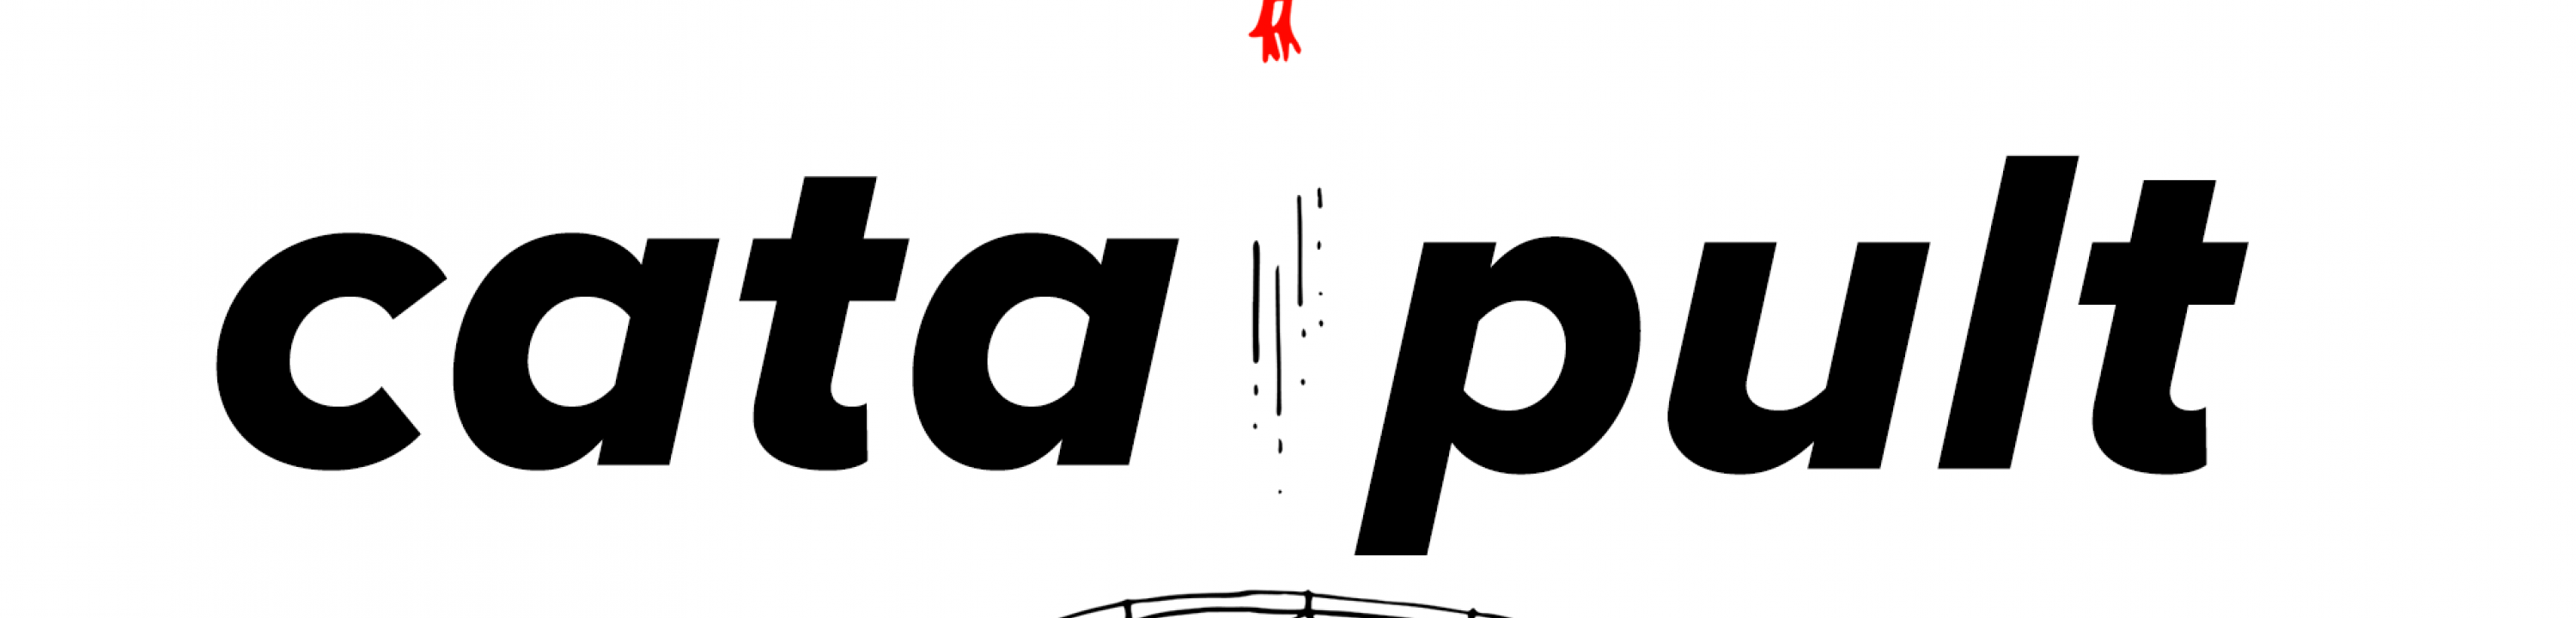 "The word ""Catapult"" in a clean, italic font."